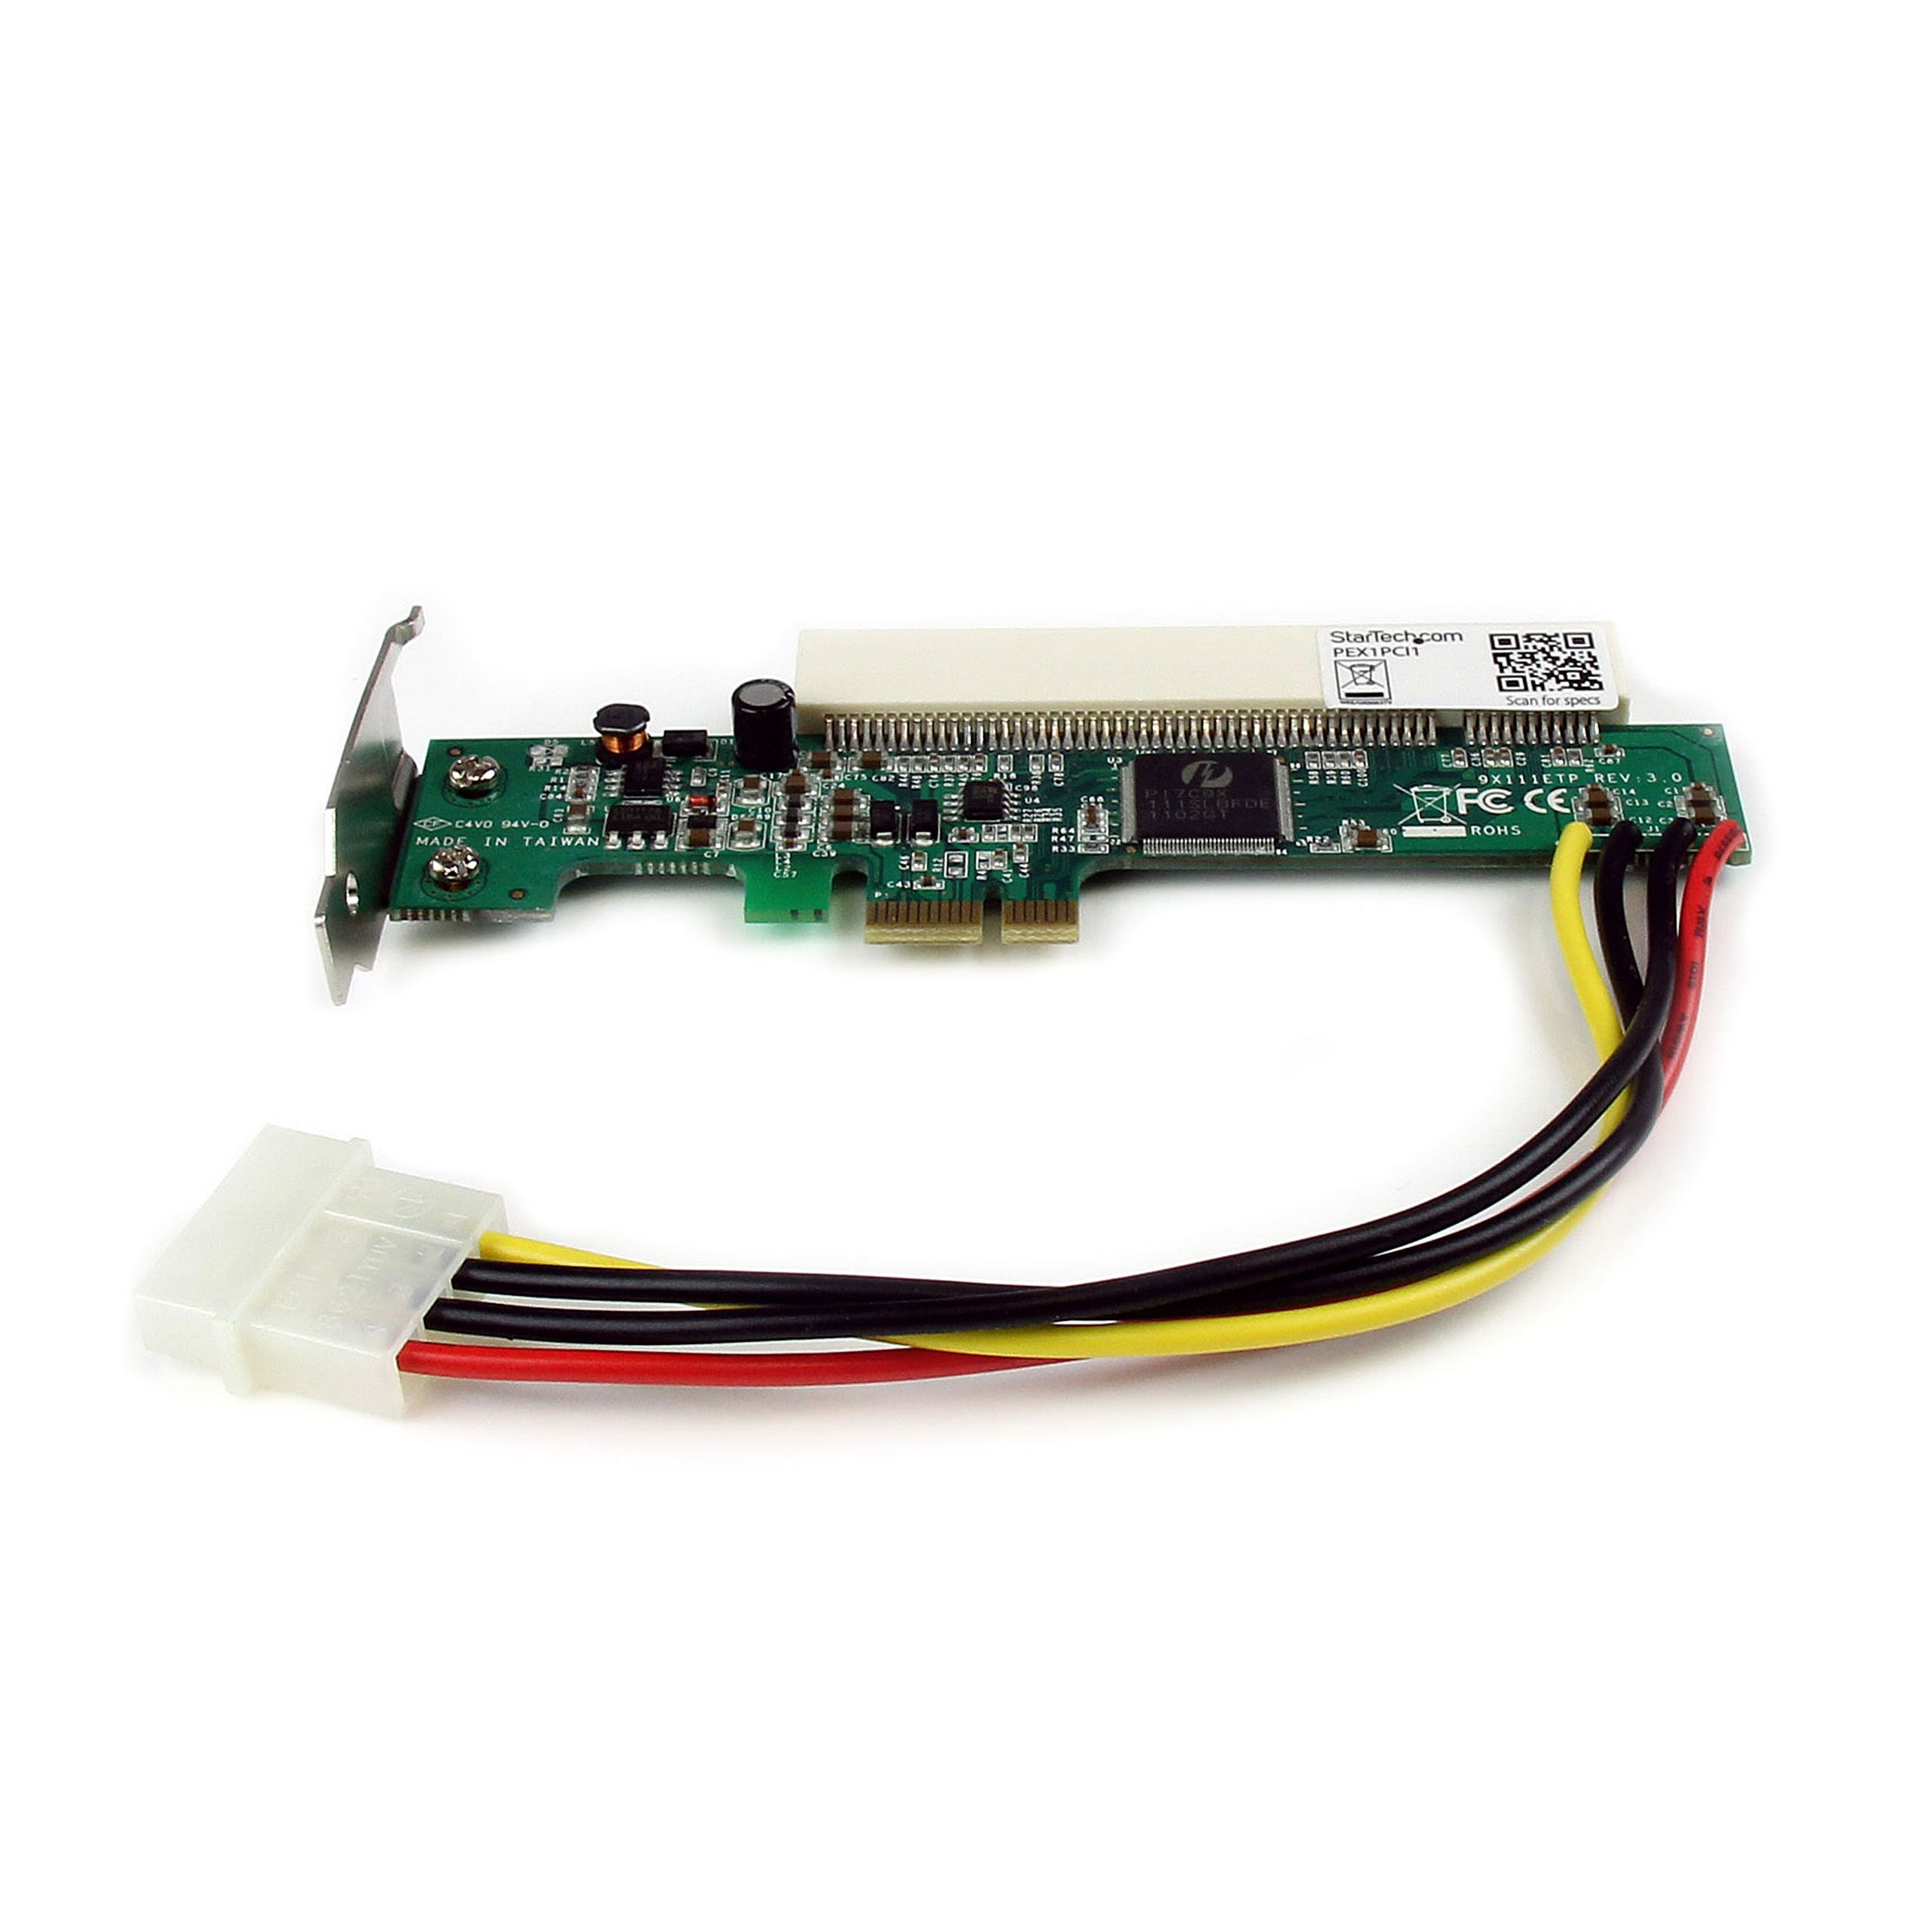 StarTech.com PCI Express to PCI Adapter Card (PEX1PCI1) by StarTech (Image #2)